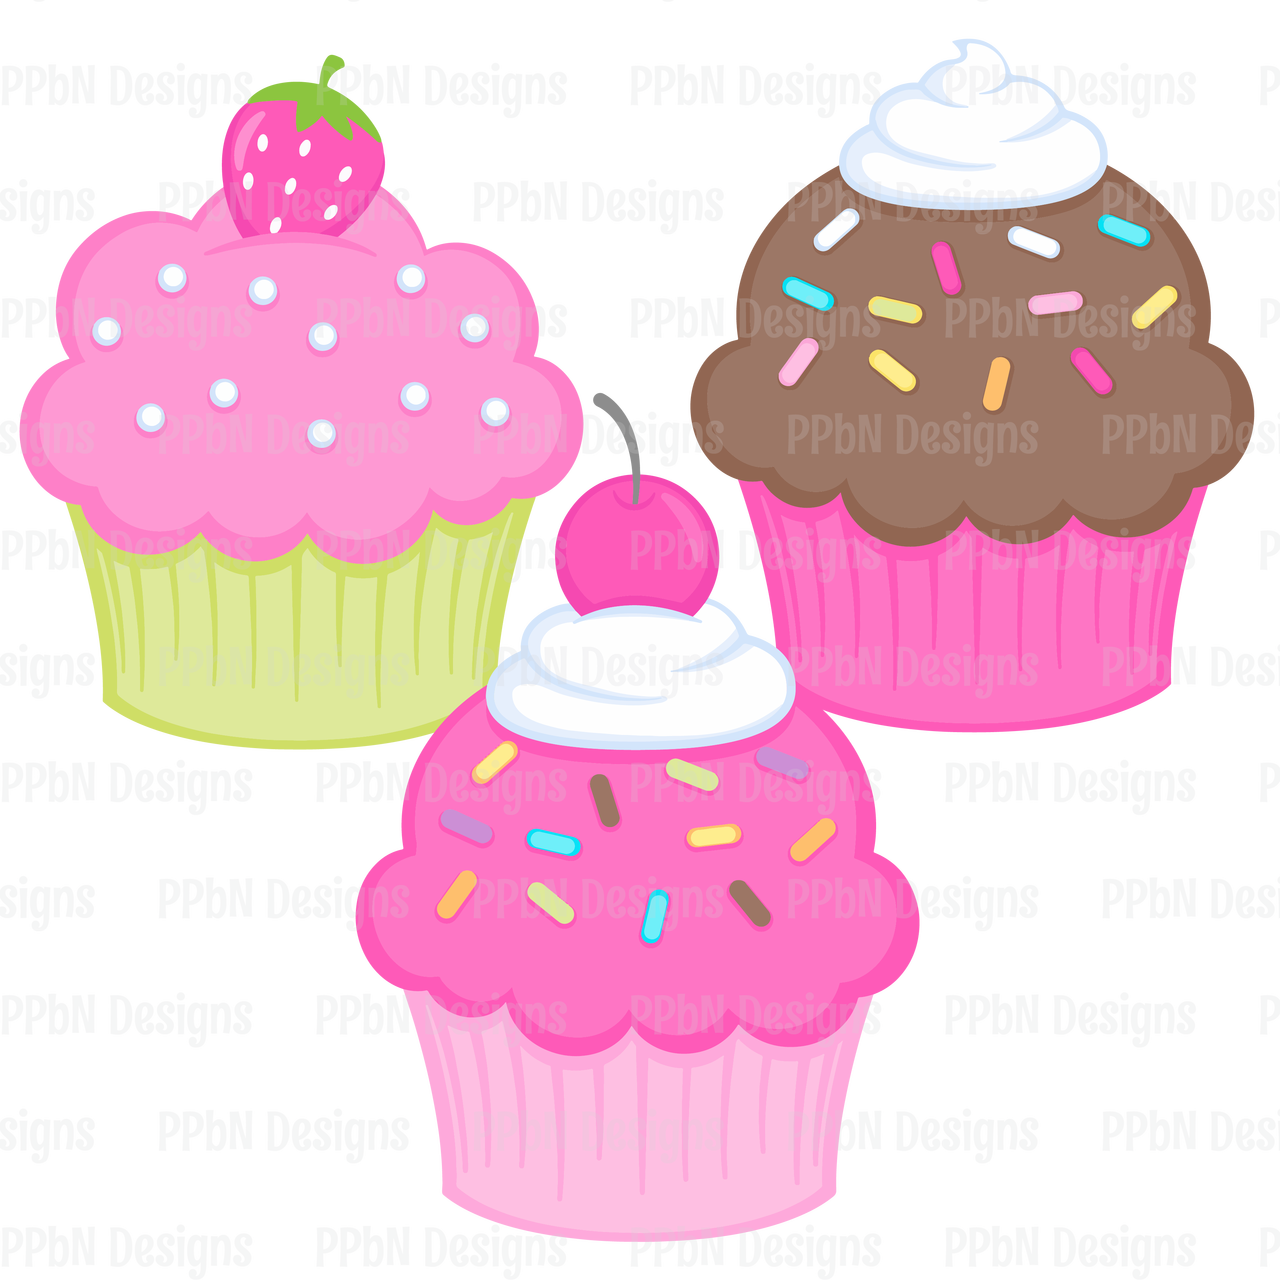 Ppbn designs pixel paper. Cupcake clipart bunny